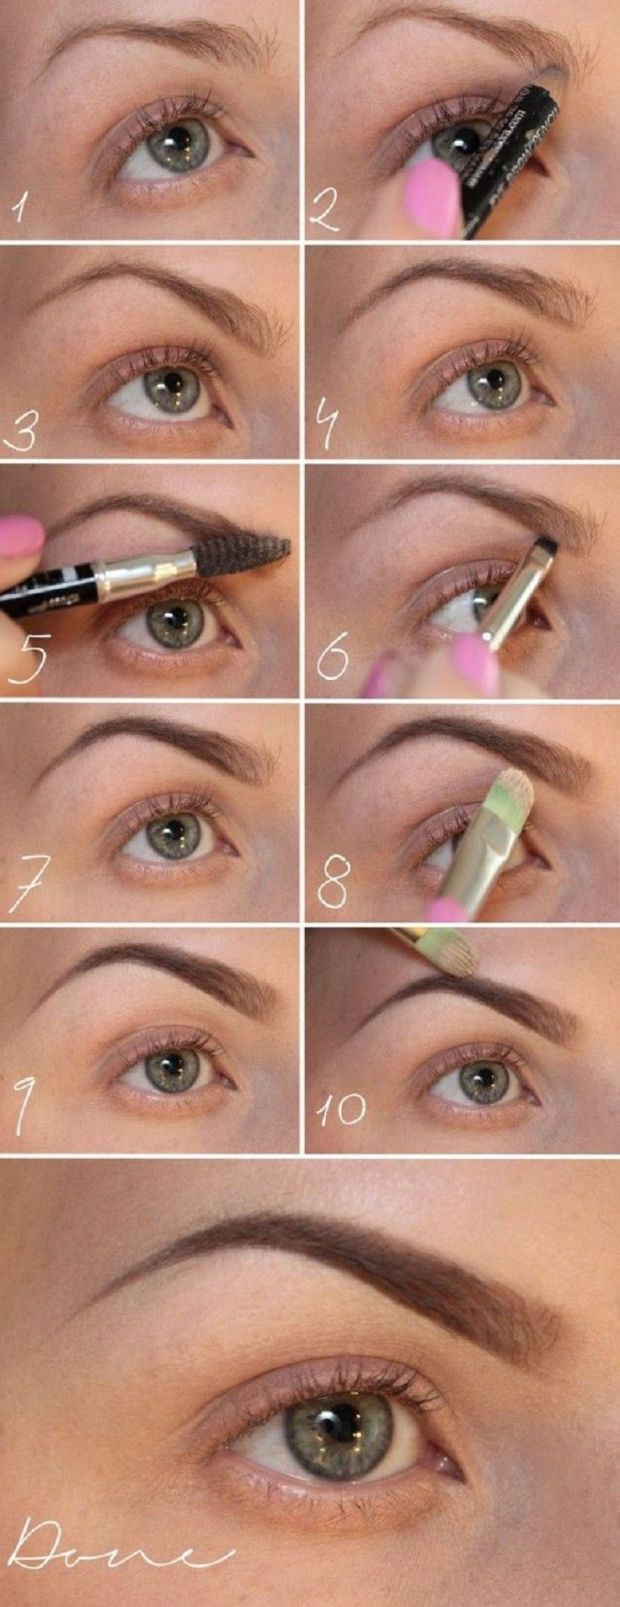 How To Shape Eyebrows Perfectly Tips Tutorial Videos